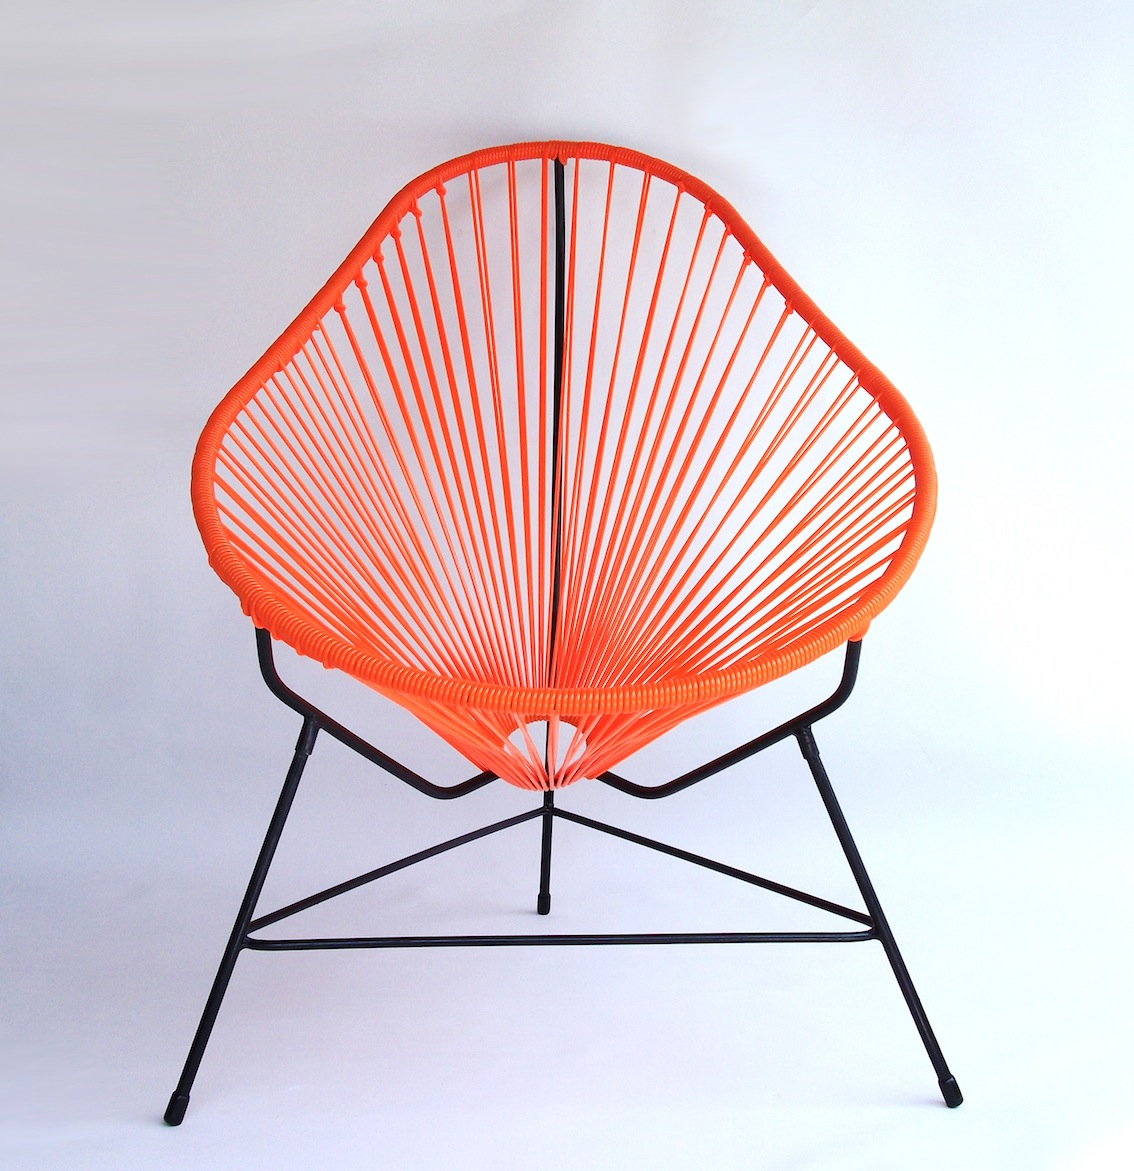 Acapulco Chair Orange Eames Molded Plywood Lounge Replica Kiitos Living By Design Barwon Heads Chairs In